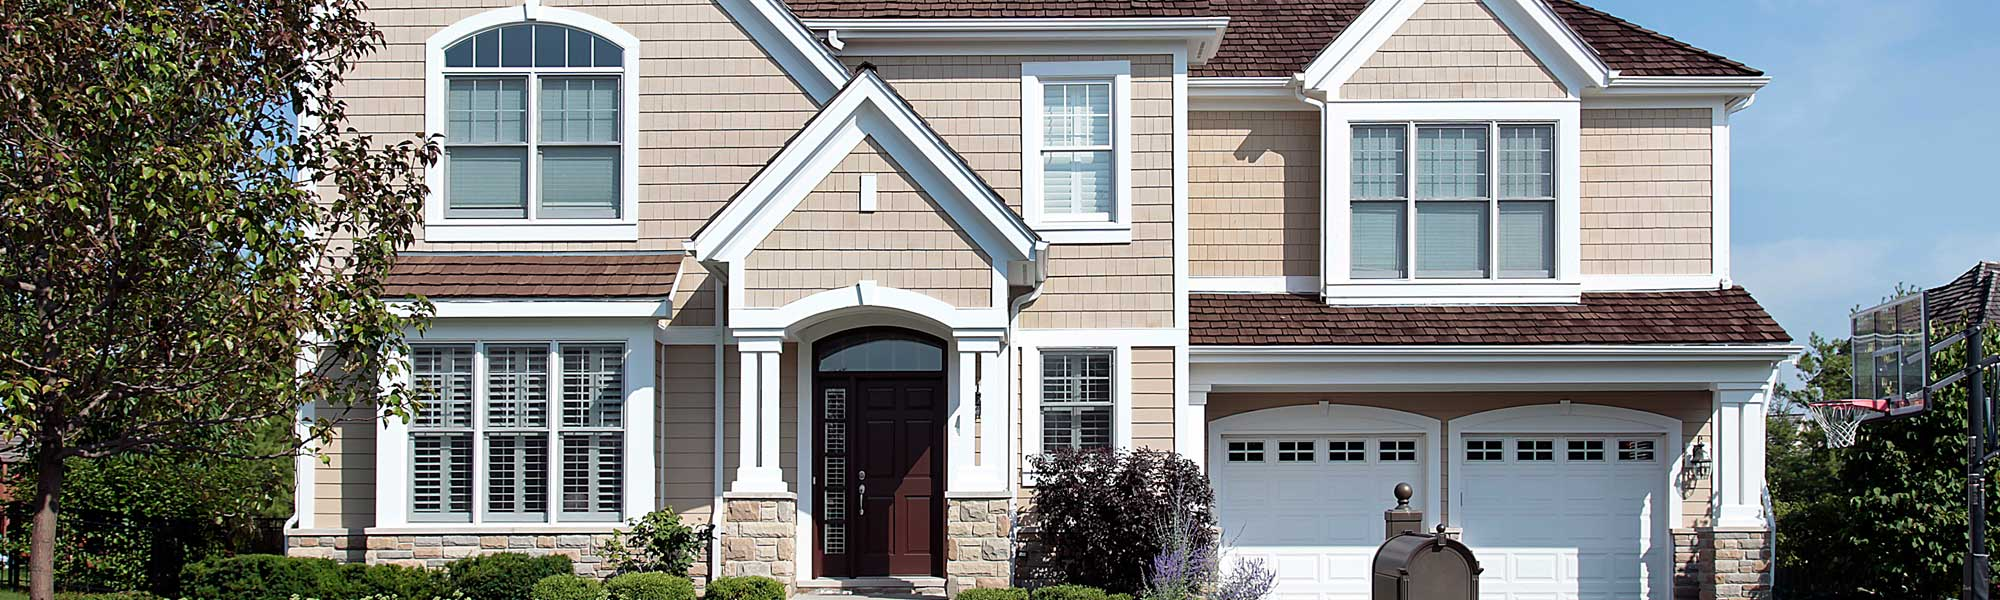 House Painters Greensboro Nc 28 Images Raleigh House Painter 28 Images House Painters Nc 28